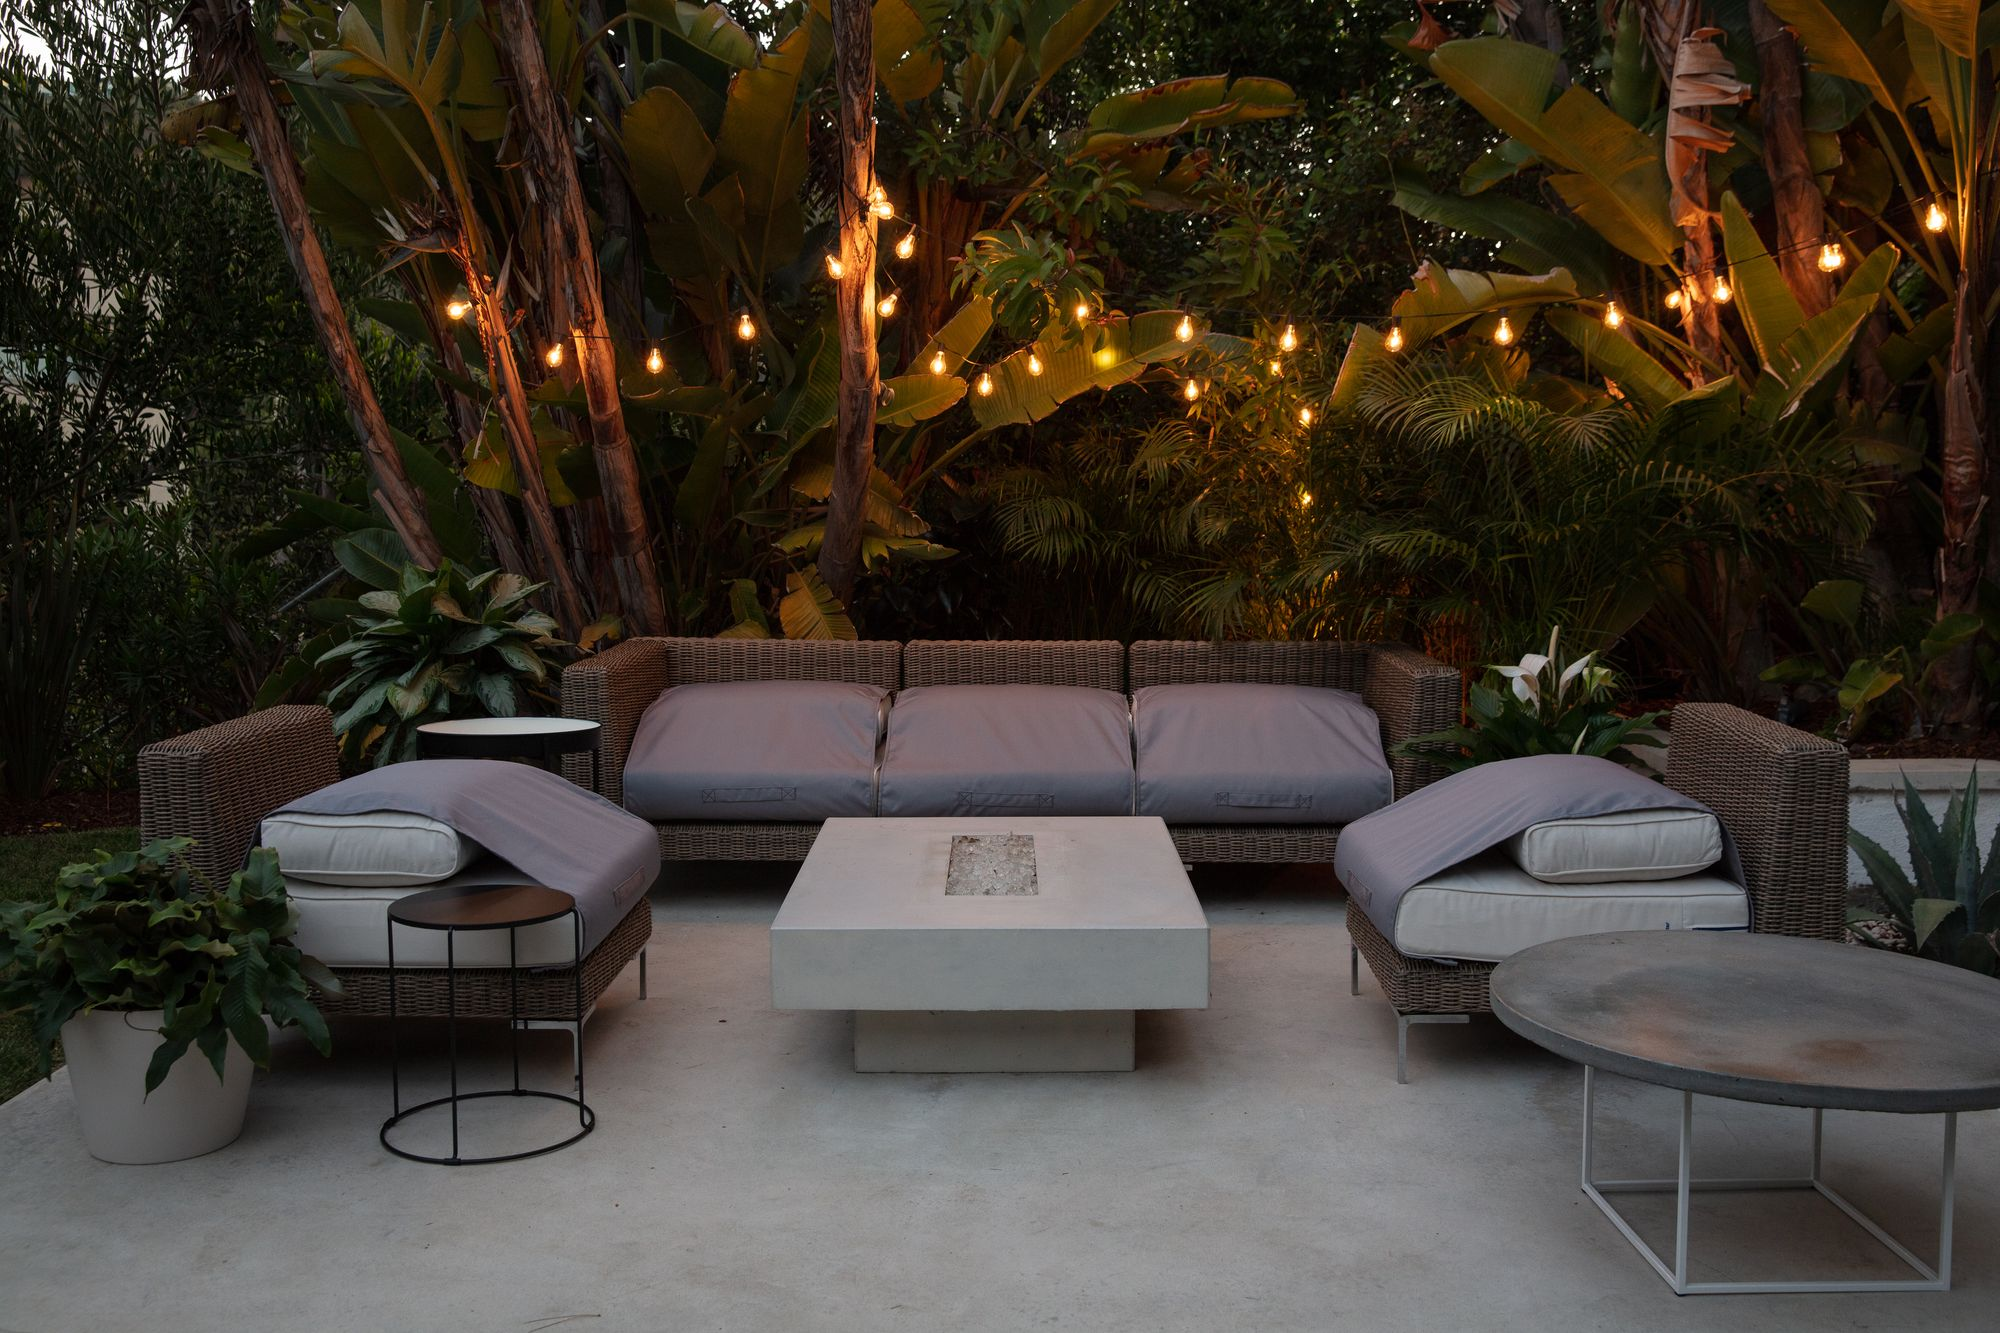 How We Made Our Sofas for All Climates, Spaces, and Places